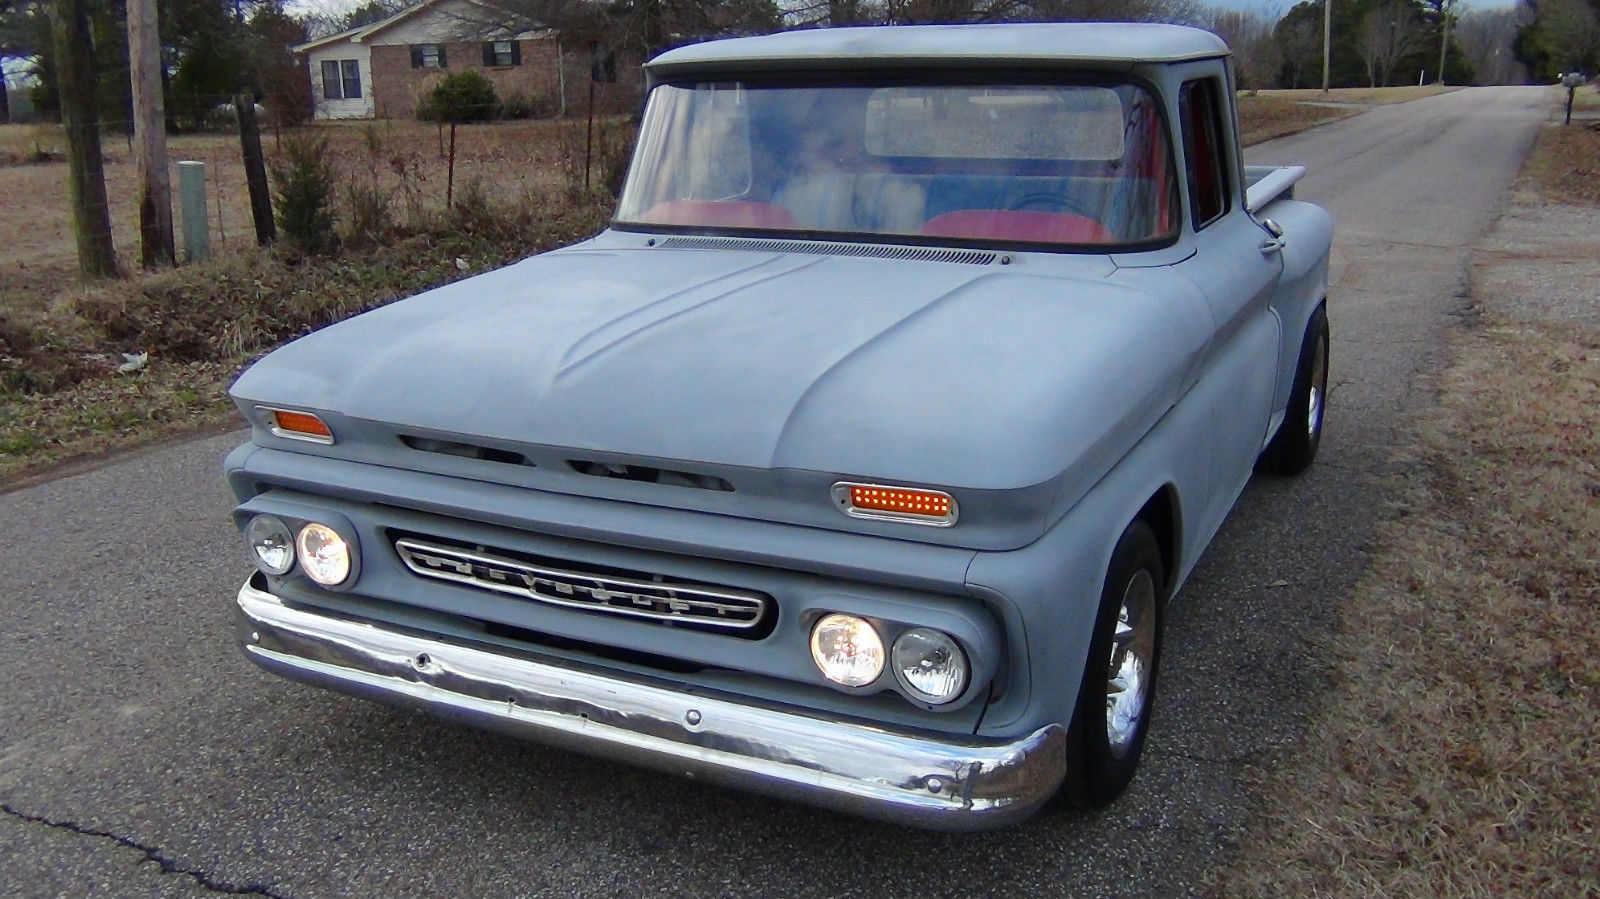 1961 Chevrolet Stepside Truck 350 Engine With 400 Automatic Lowered C10 Chevy 62 Hood